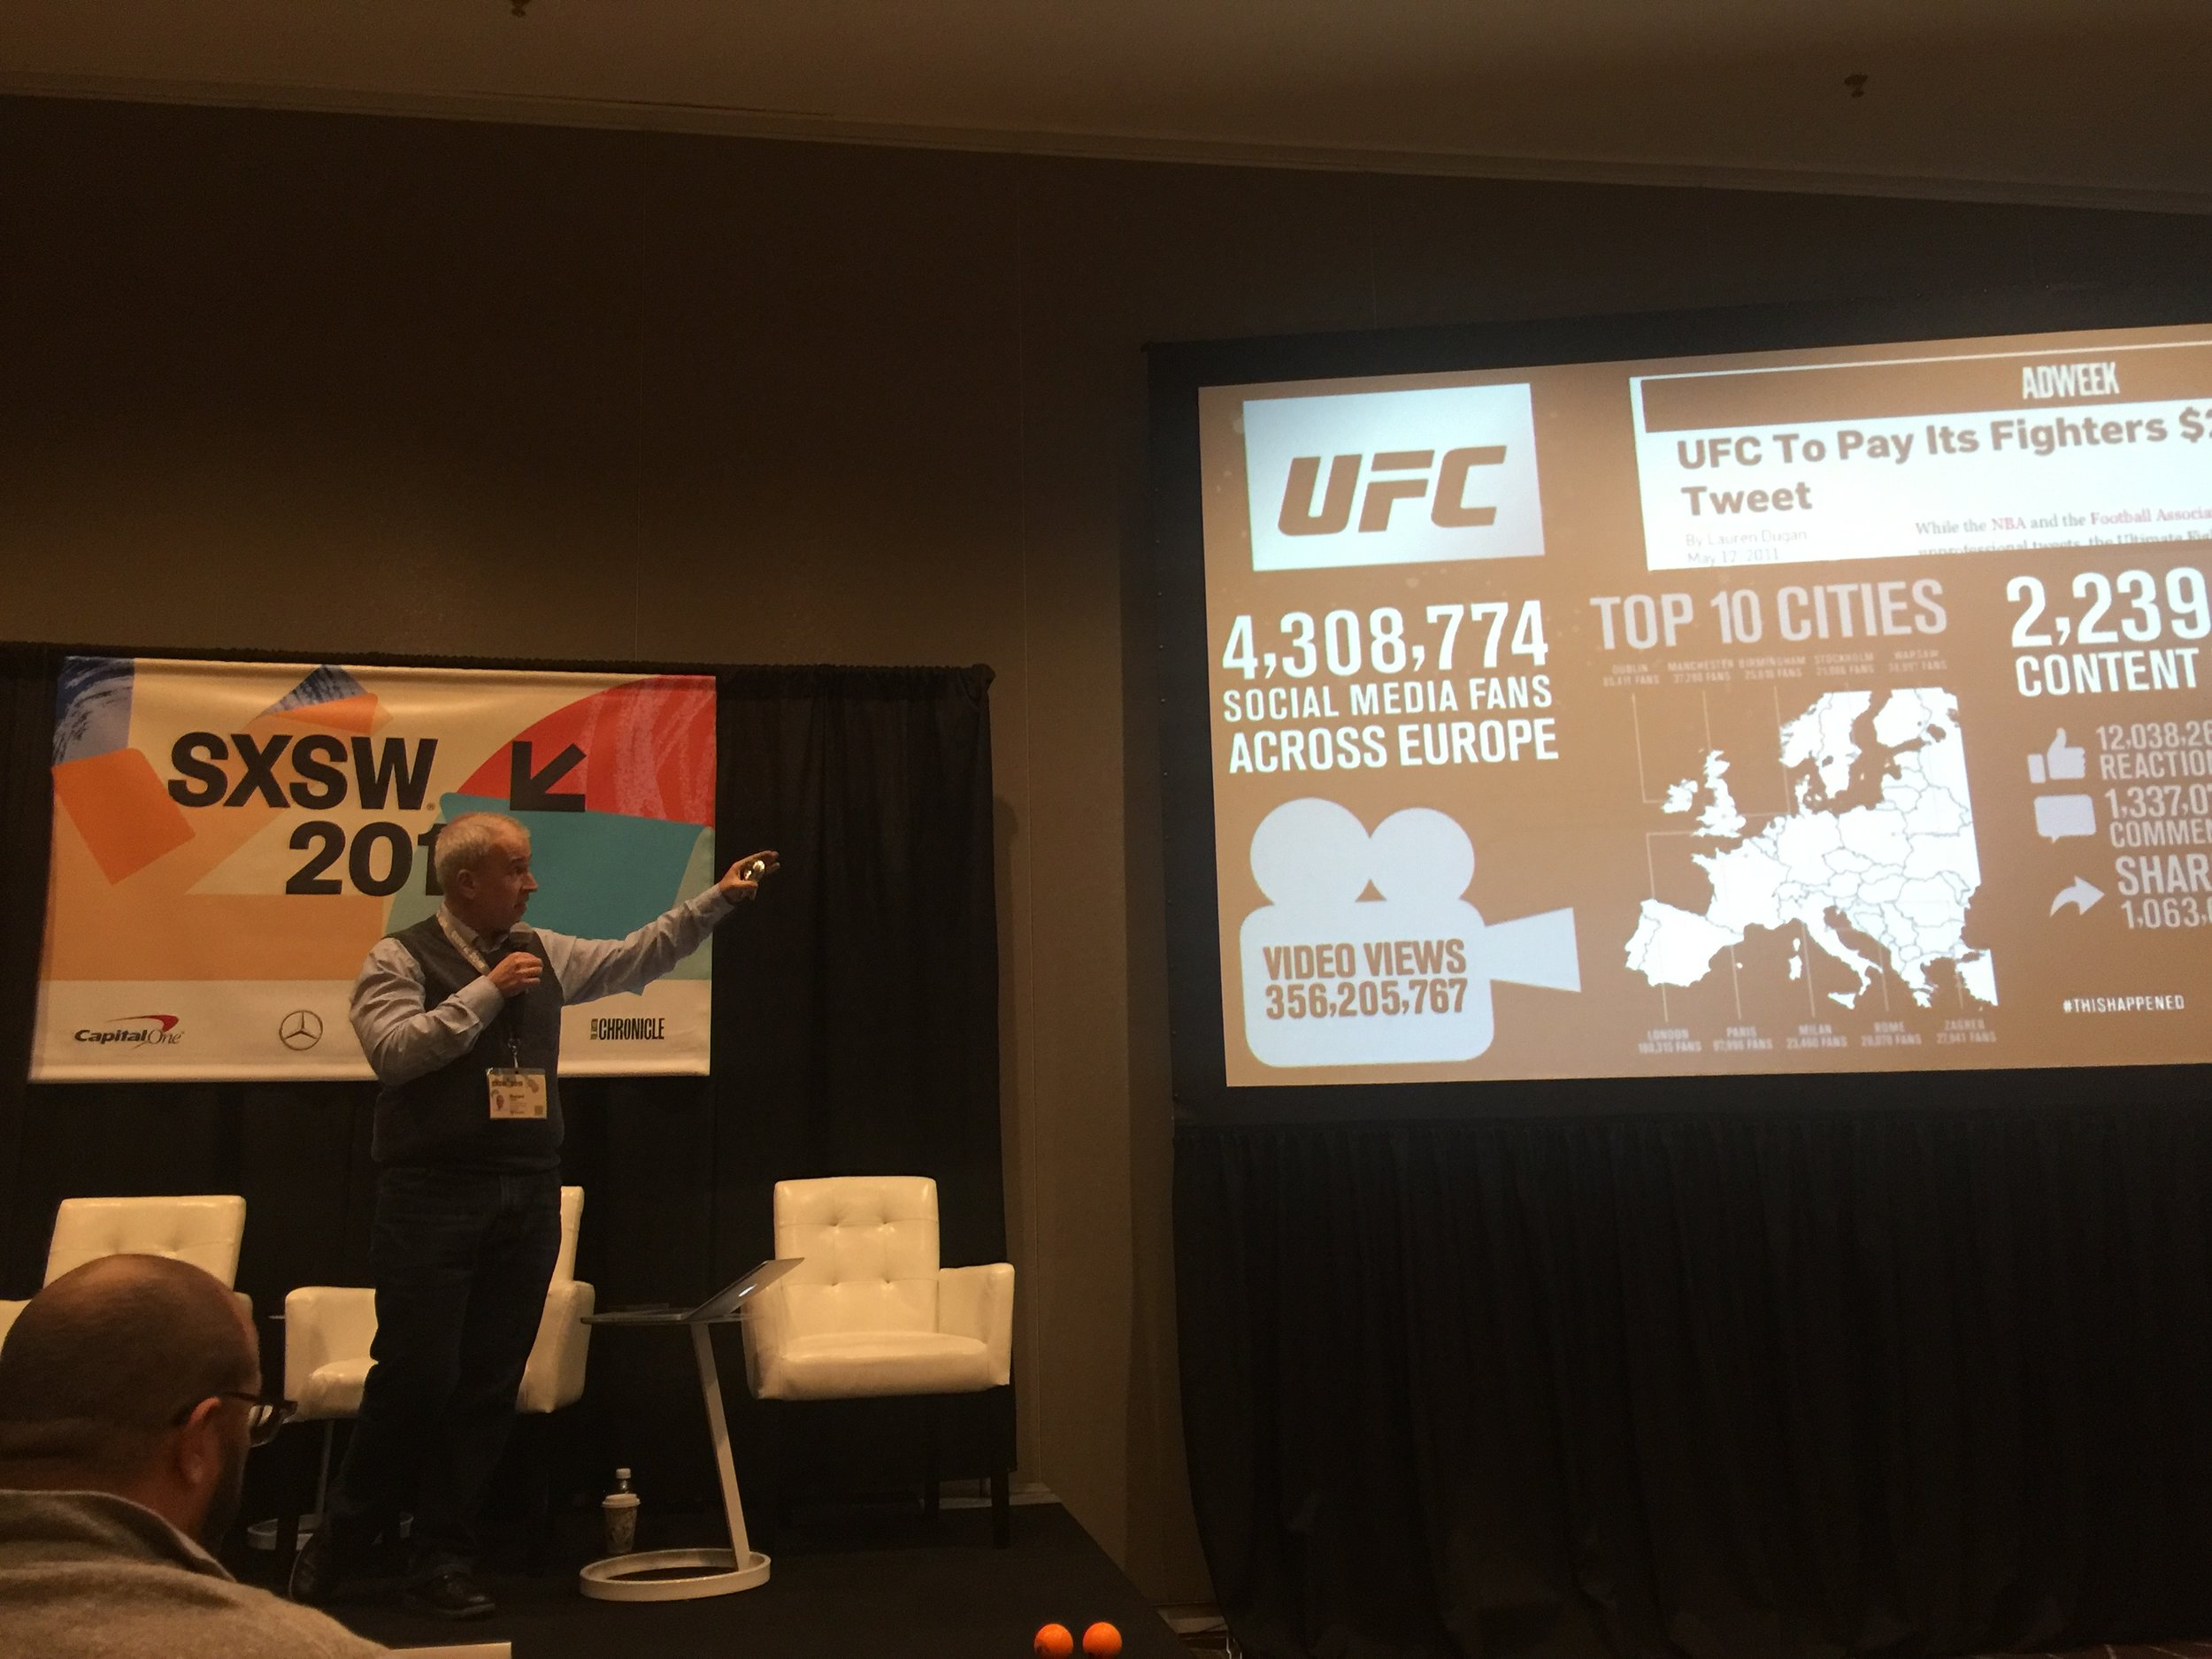 Talking how UFC overachieve in social media in comparison to boxing